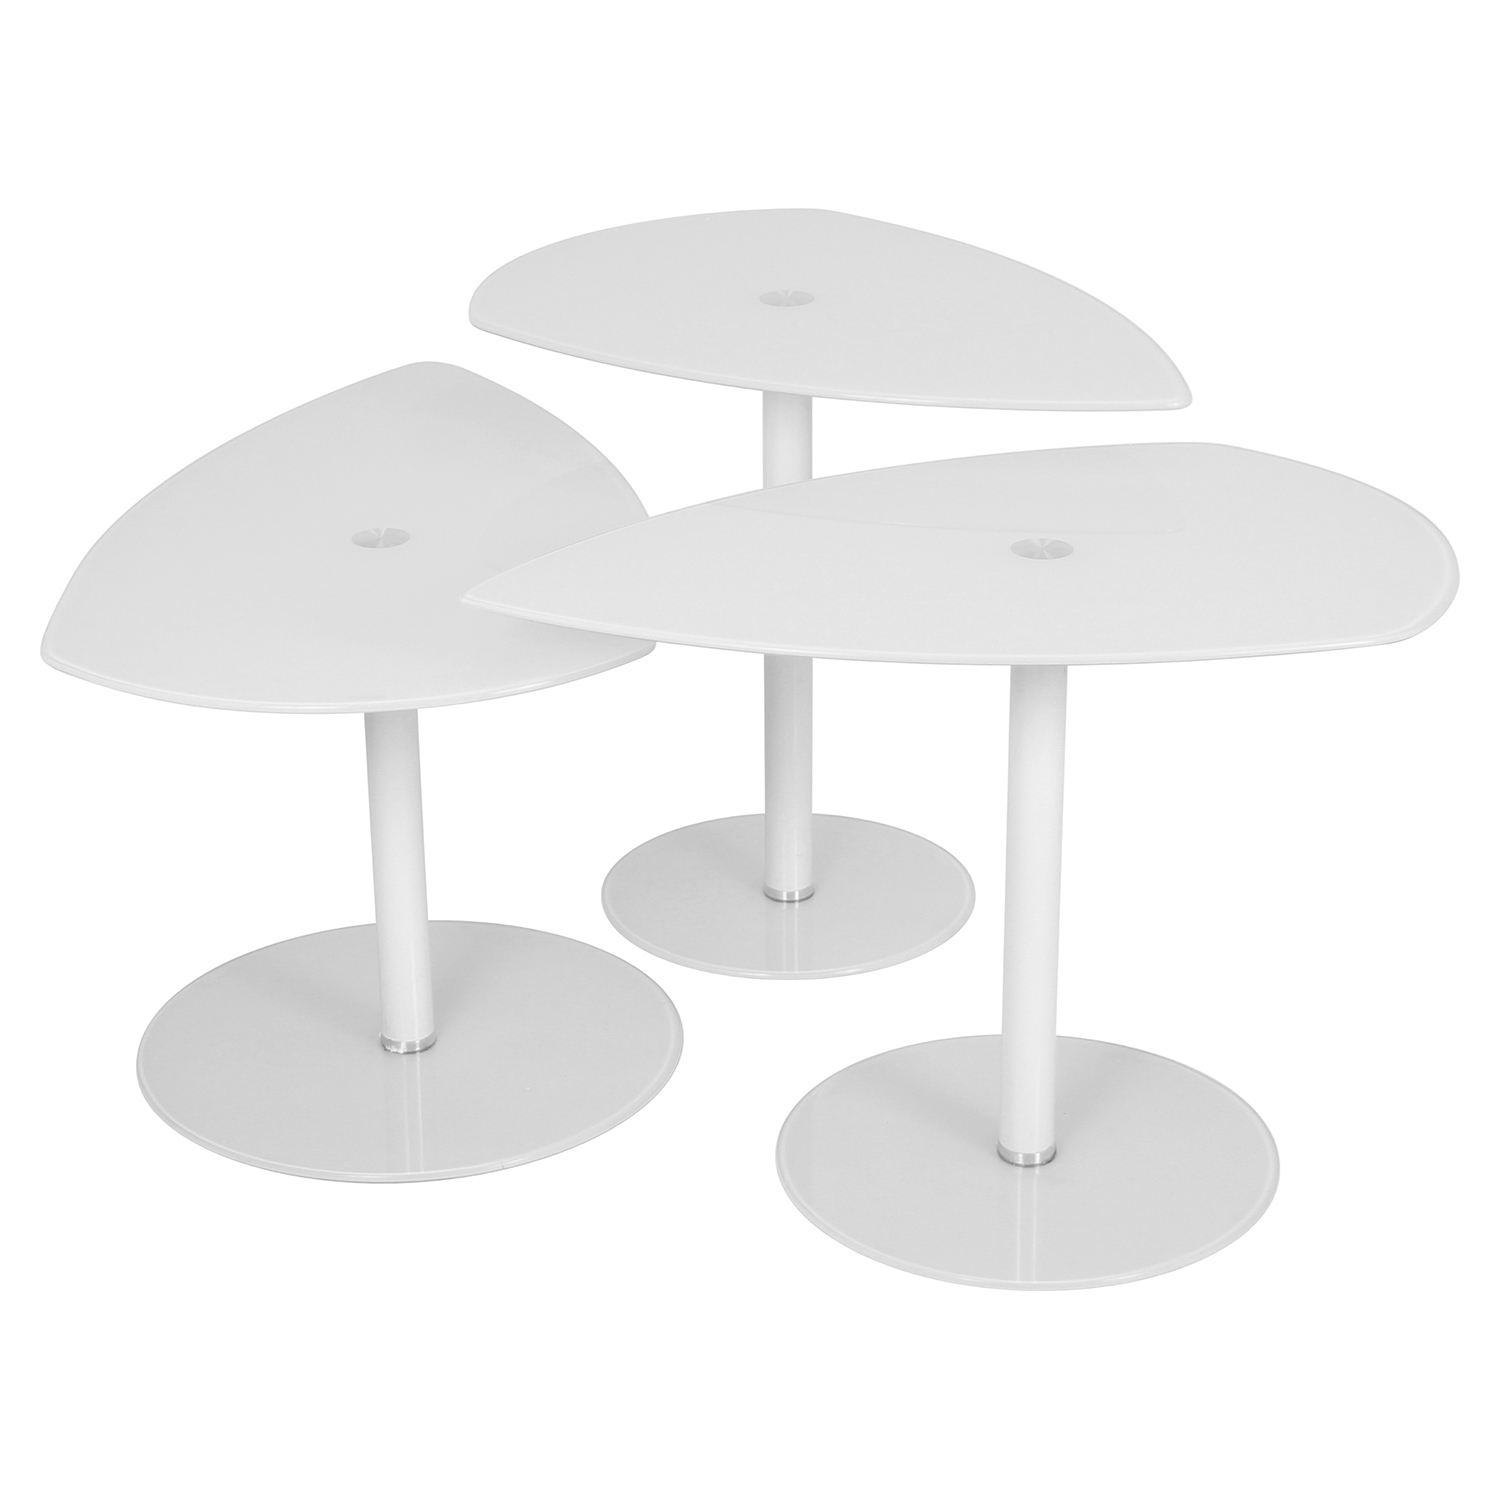 Pix Nesting Tables - White